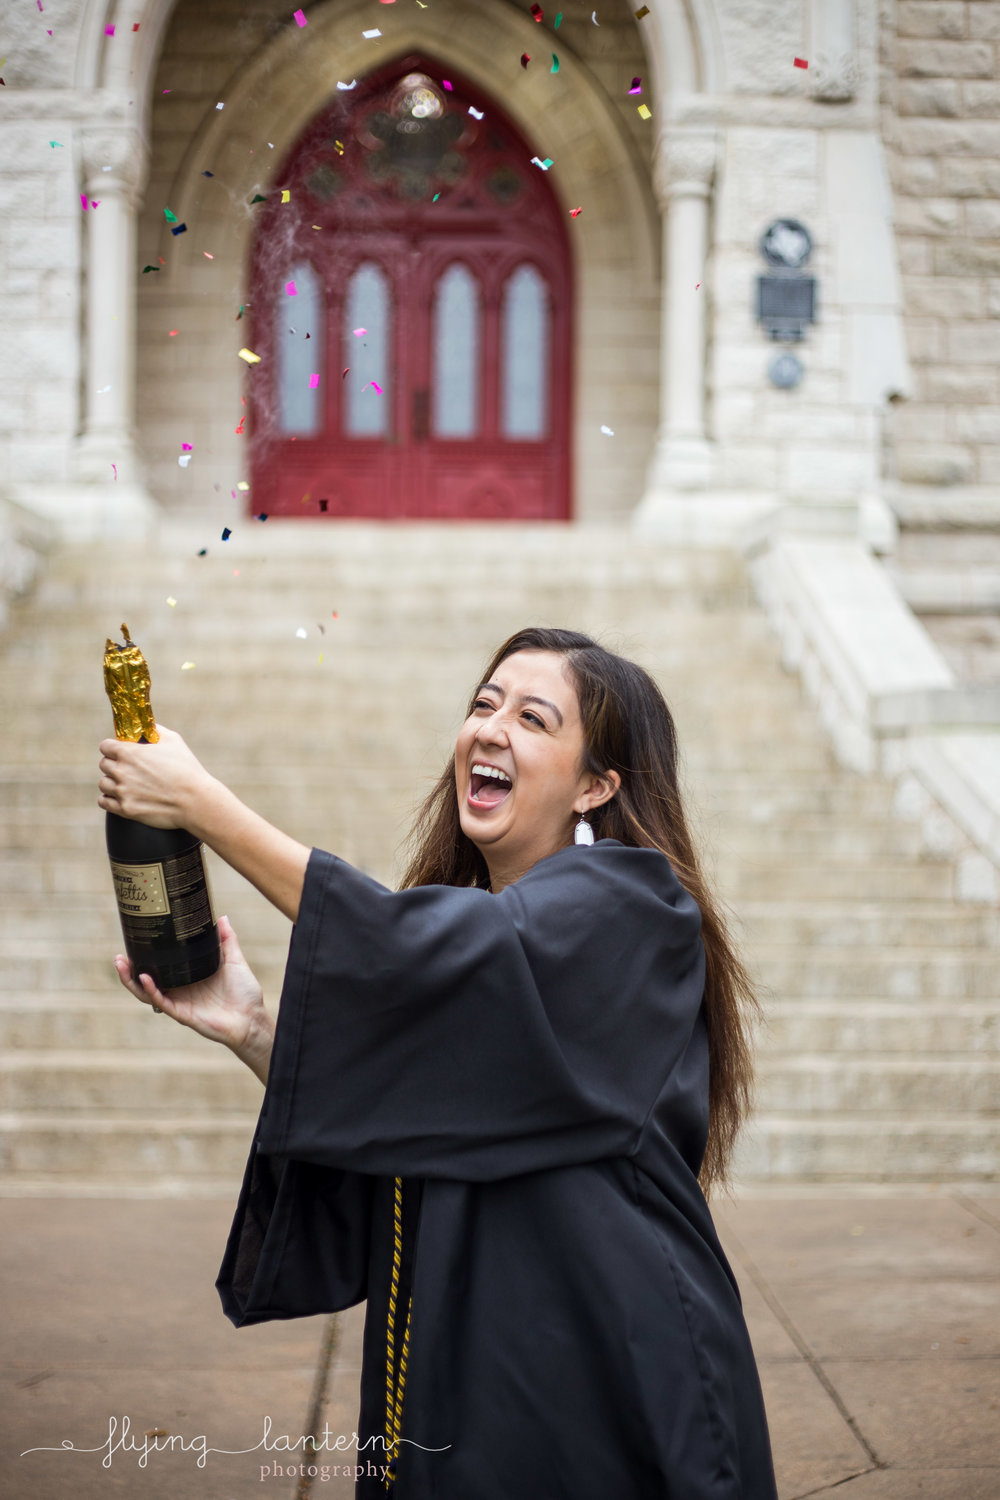 Girl senior portrait at st. edward's university in front of main building popping champagne confetti by Erin Reas of flying lantern photography